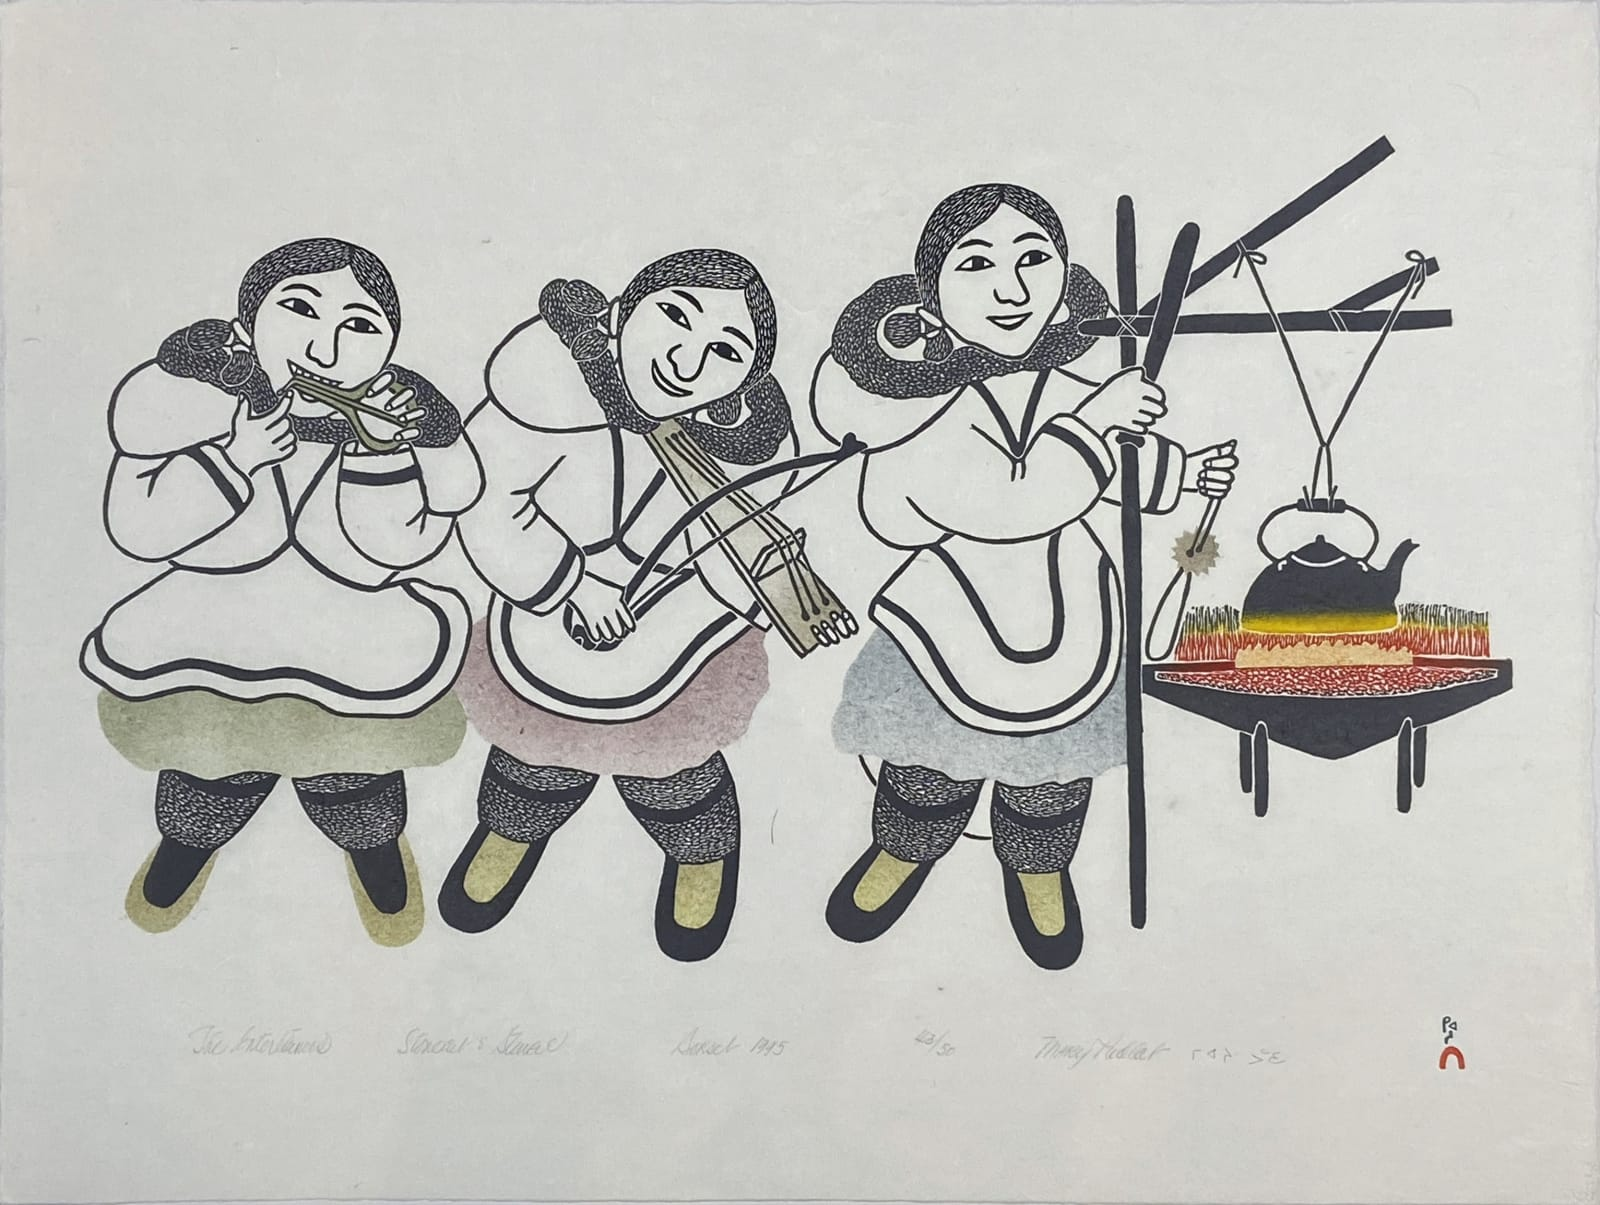 LOT 74 MARY PUDLAT (1923-2001) KINNGAIT (CAPE DORSET) The Entertainers, 1995 stonecut and stencil, 18 1/2 x 25 in (47 x 63.5 cm) ESTIMATE: $350 — $500 price realized: $336